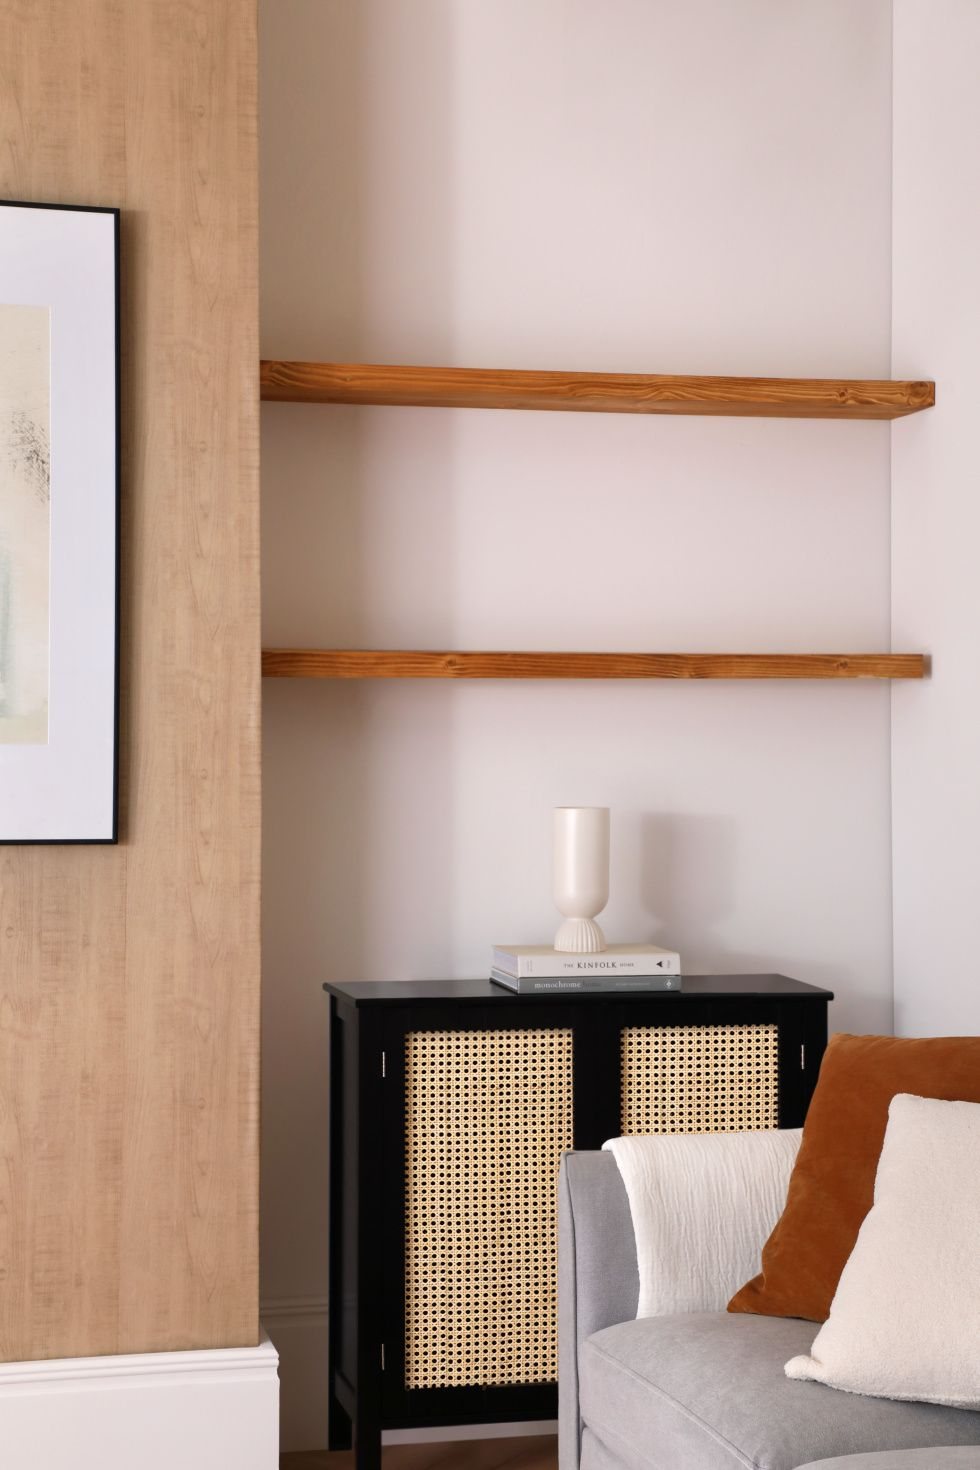 Modern living room with wooden shelving